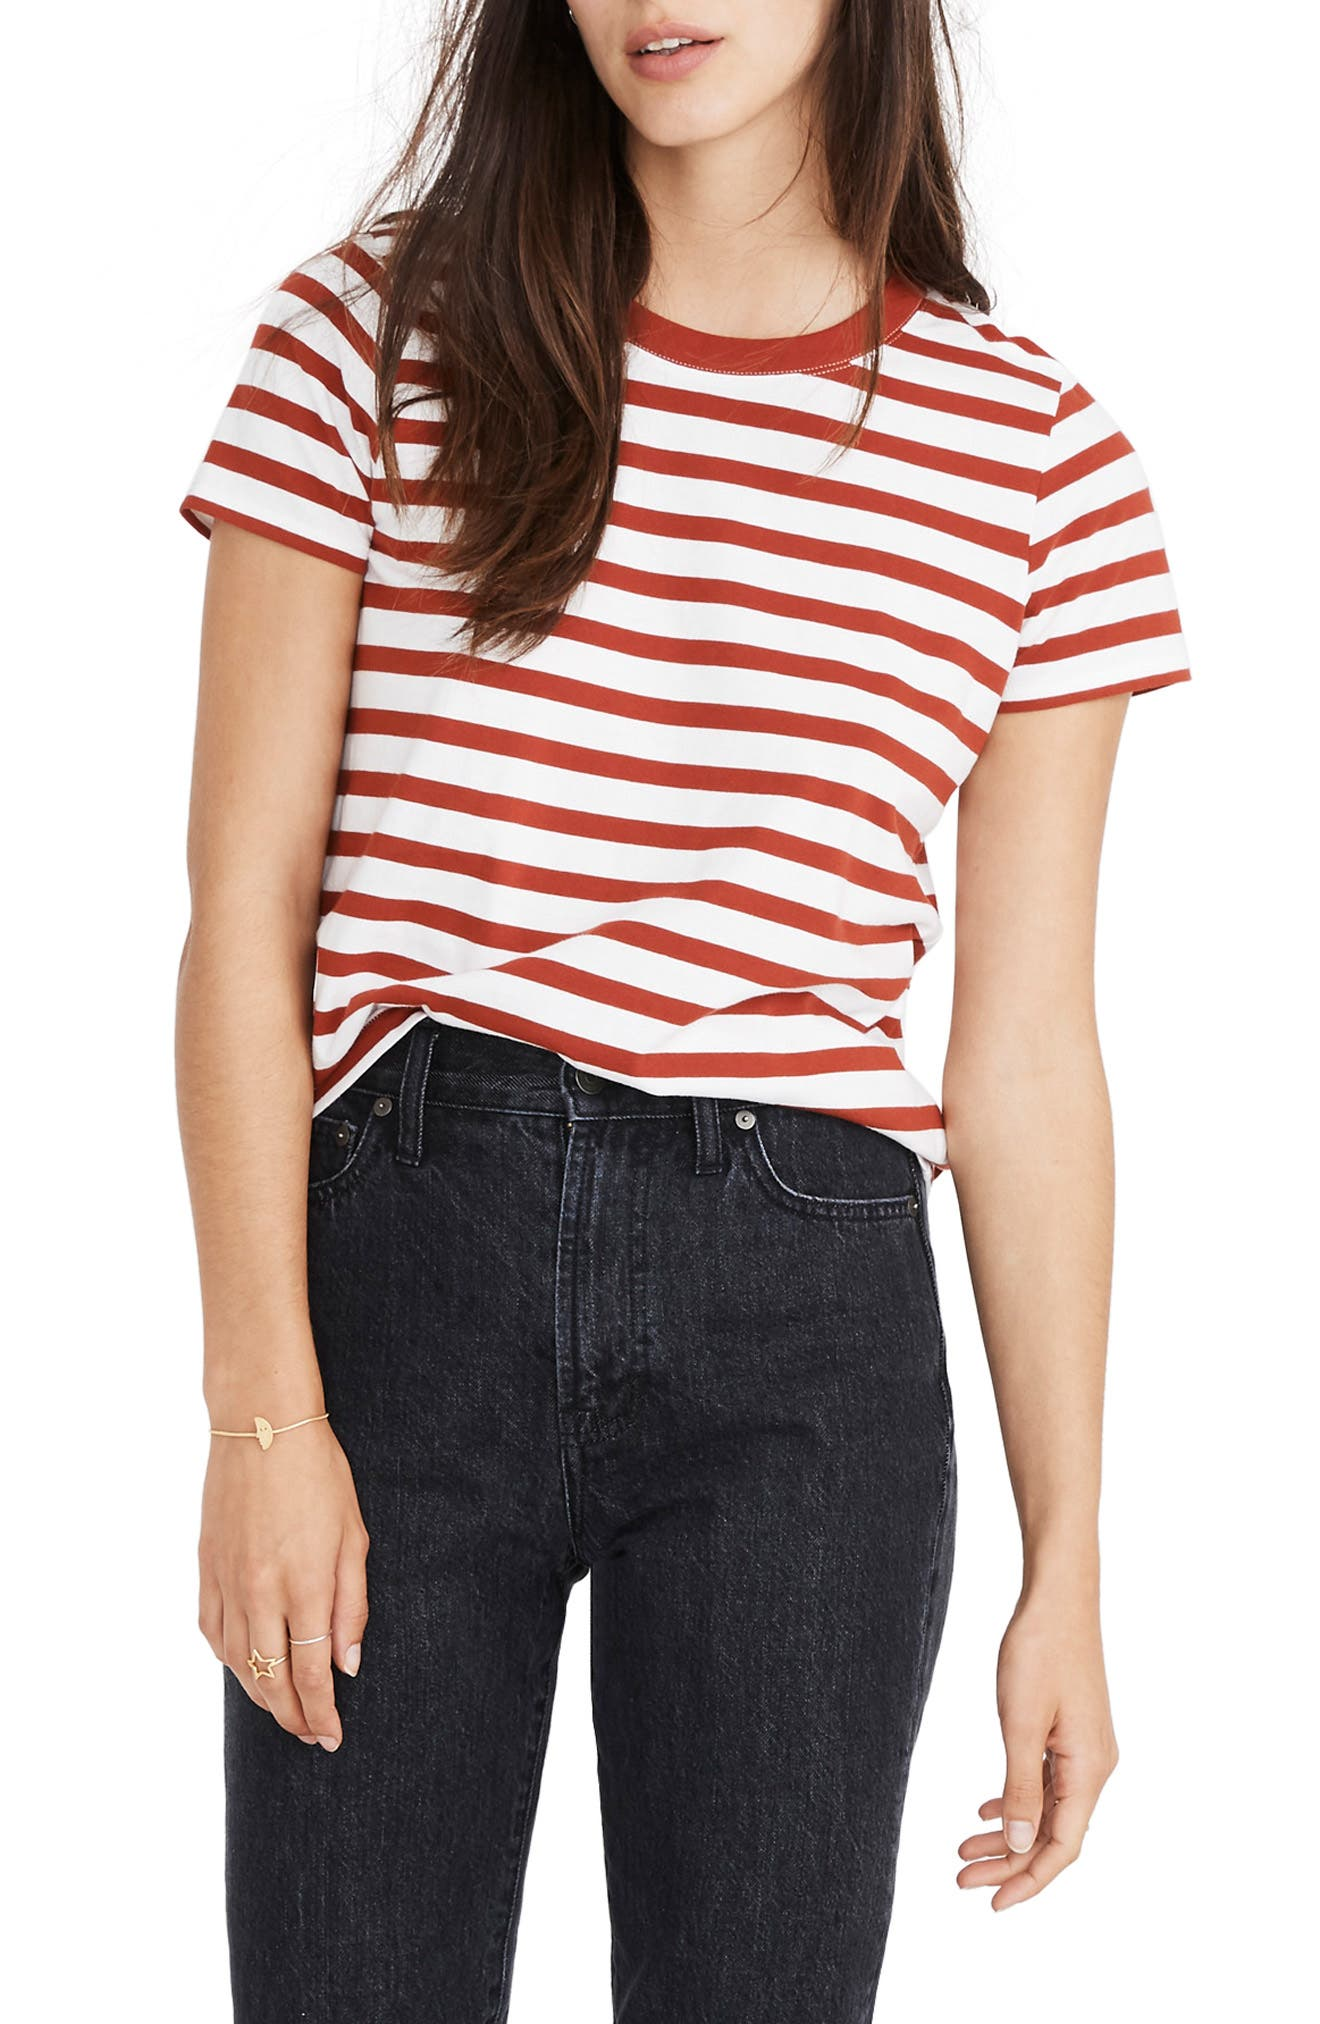 1940s Blouses, Shirts and Tops Fashion History Womens Madewell Northside Vintage Stripe Tee $18.50 AT vintagedancer.com